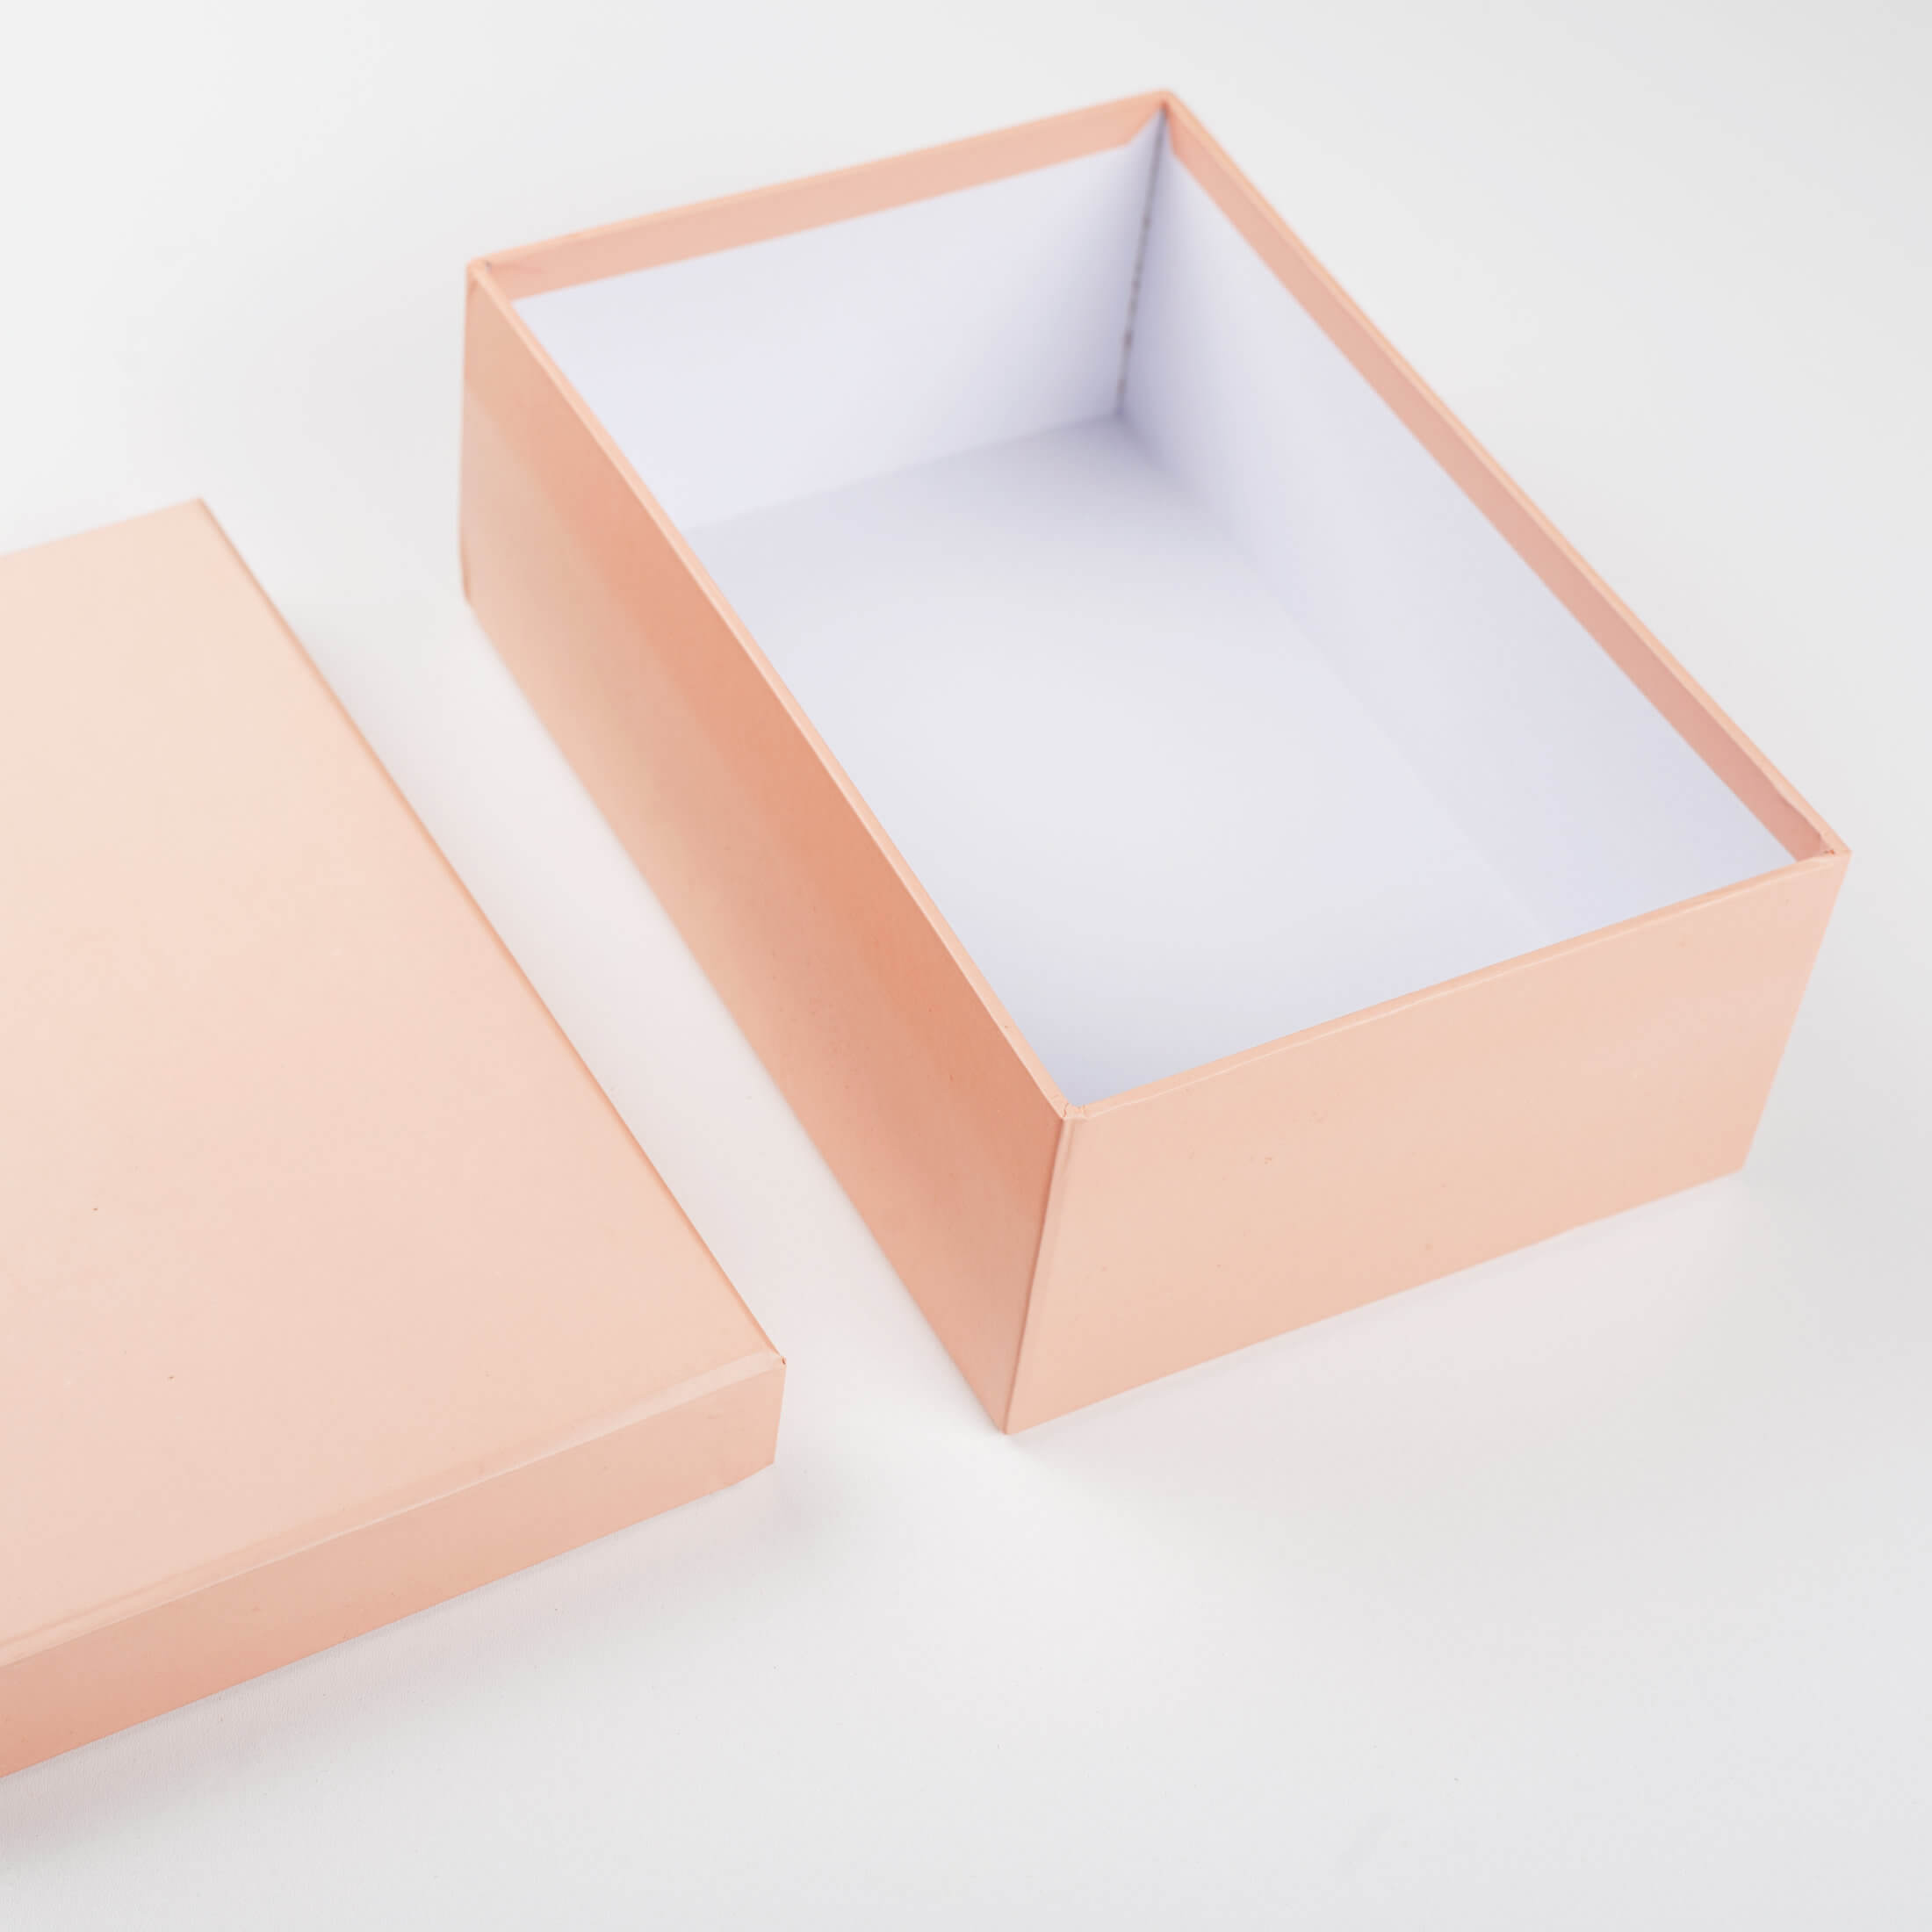 KonMari Method Of Tidying. A Salmon Pink Shoe Box (Or Any Other Colour Of Shoe Box!) Is Perfect For Temporary Storage